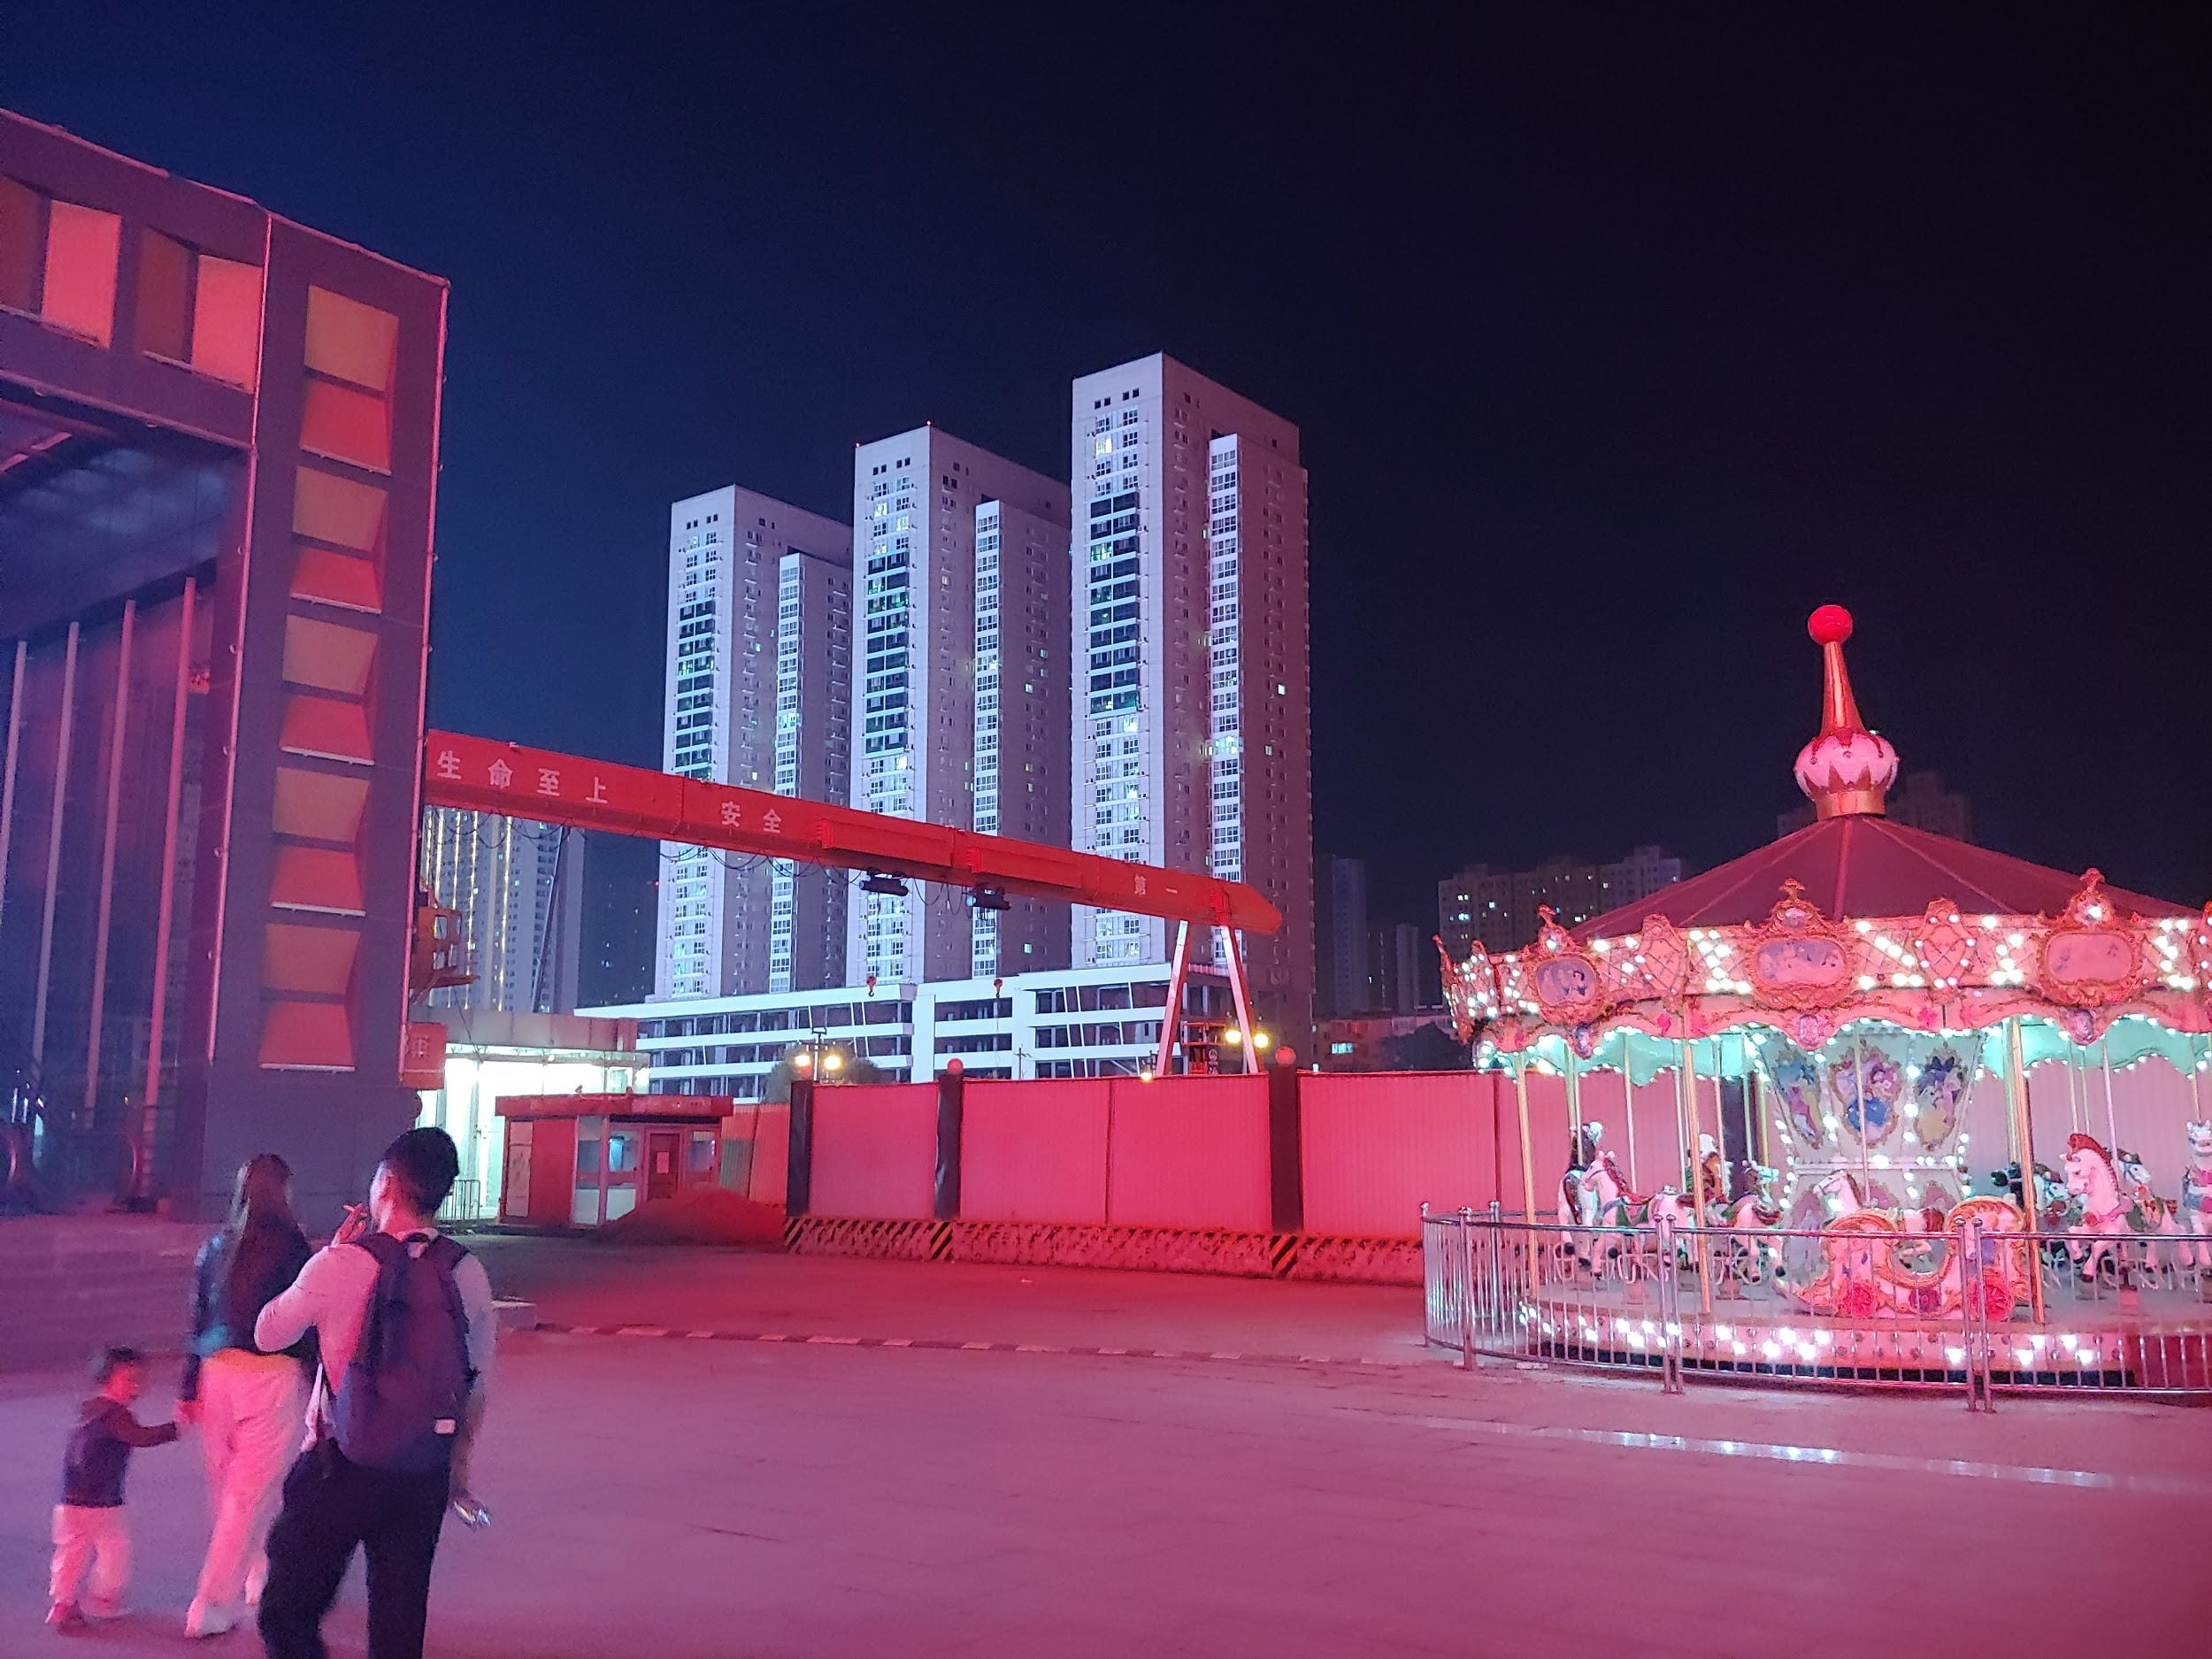 Urban view of Xi'an with skyscapers and a carousel